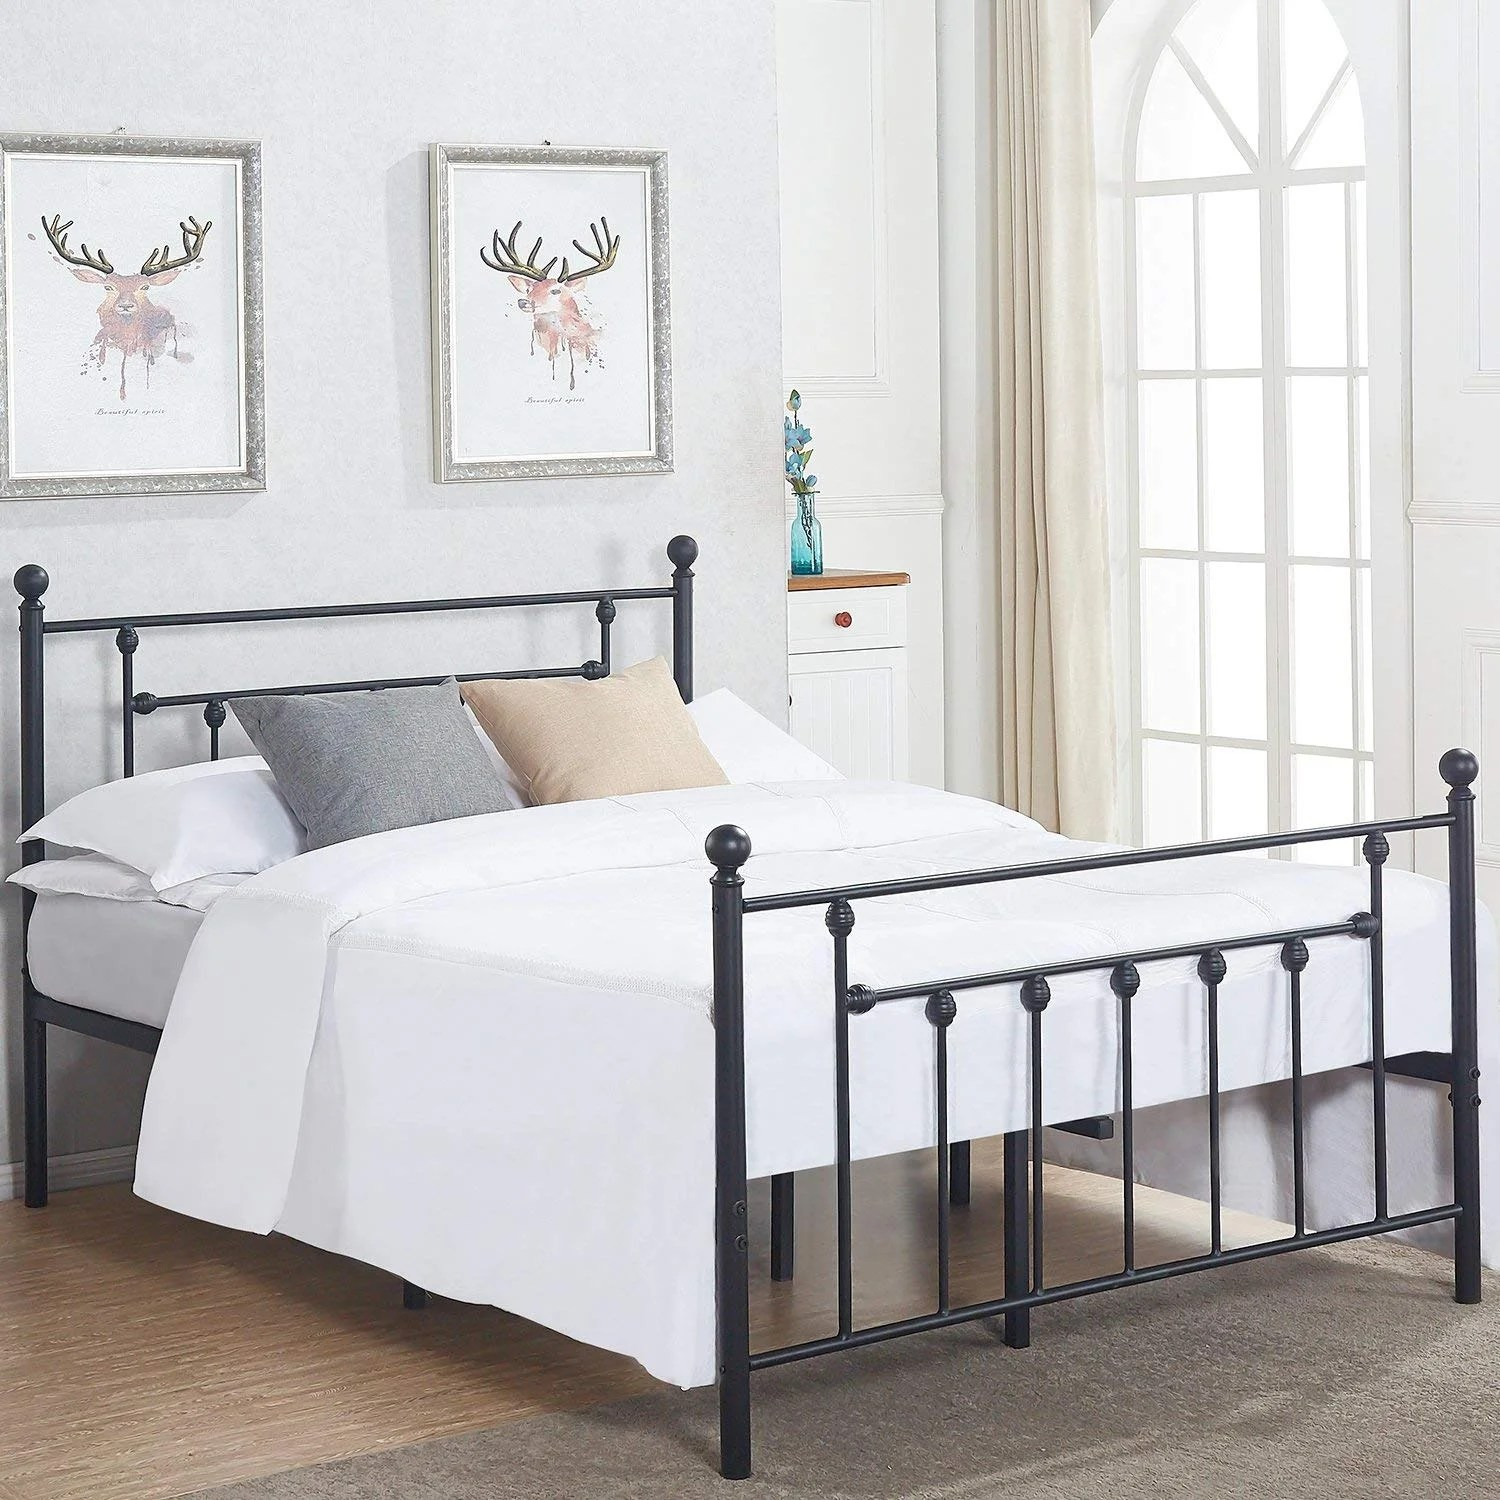 Metal Bed Headboards Vecelo Metal Beds Victorian Metal Platform Beds Bed Frames With Headboard Victorian Style